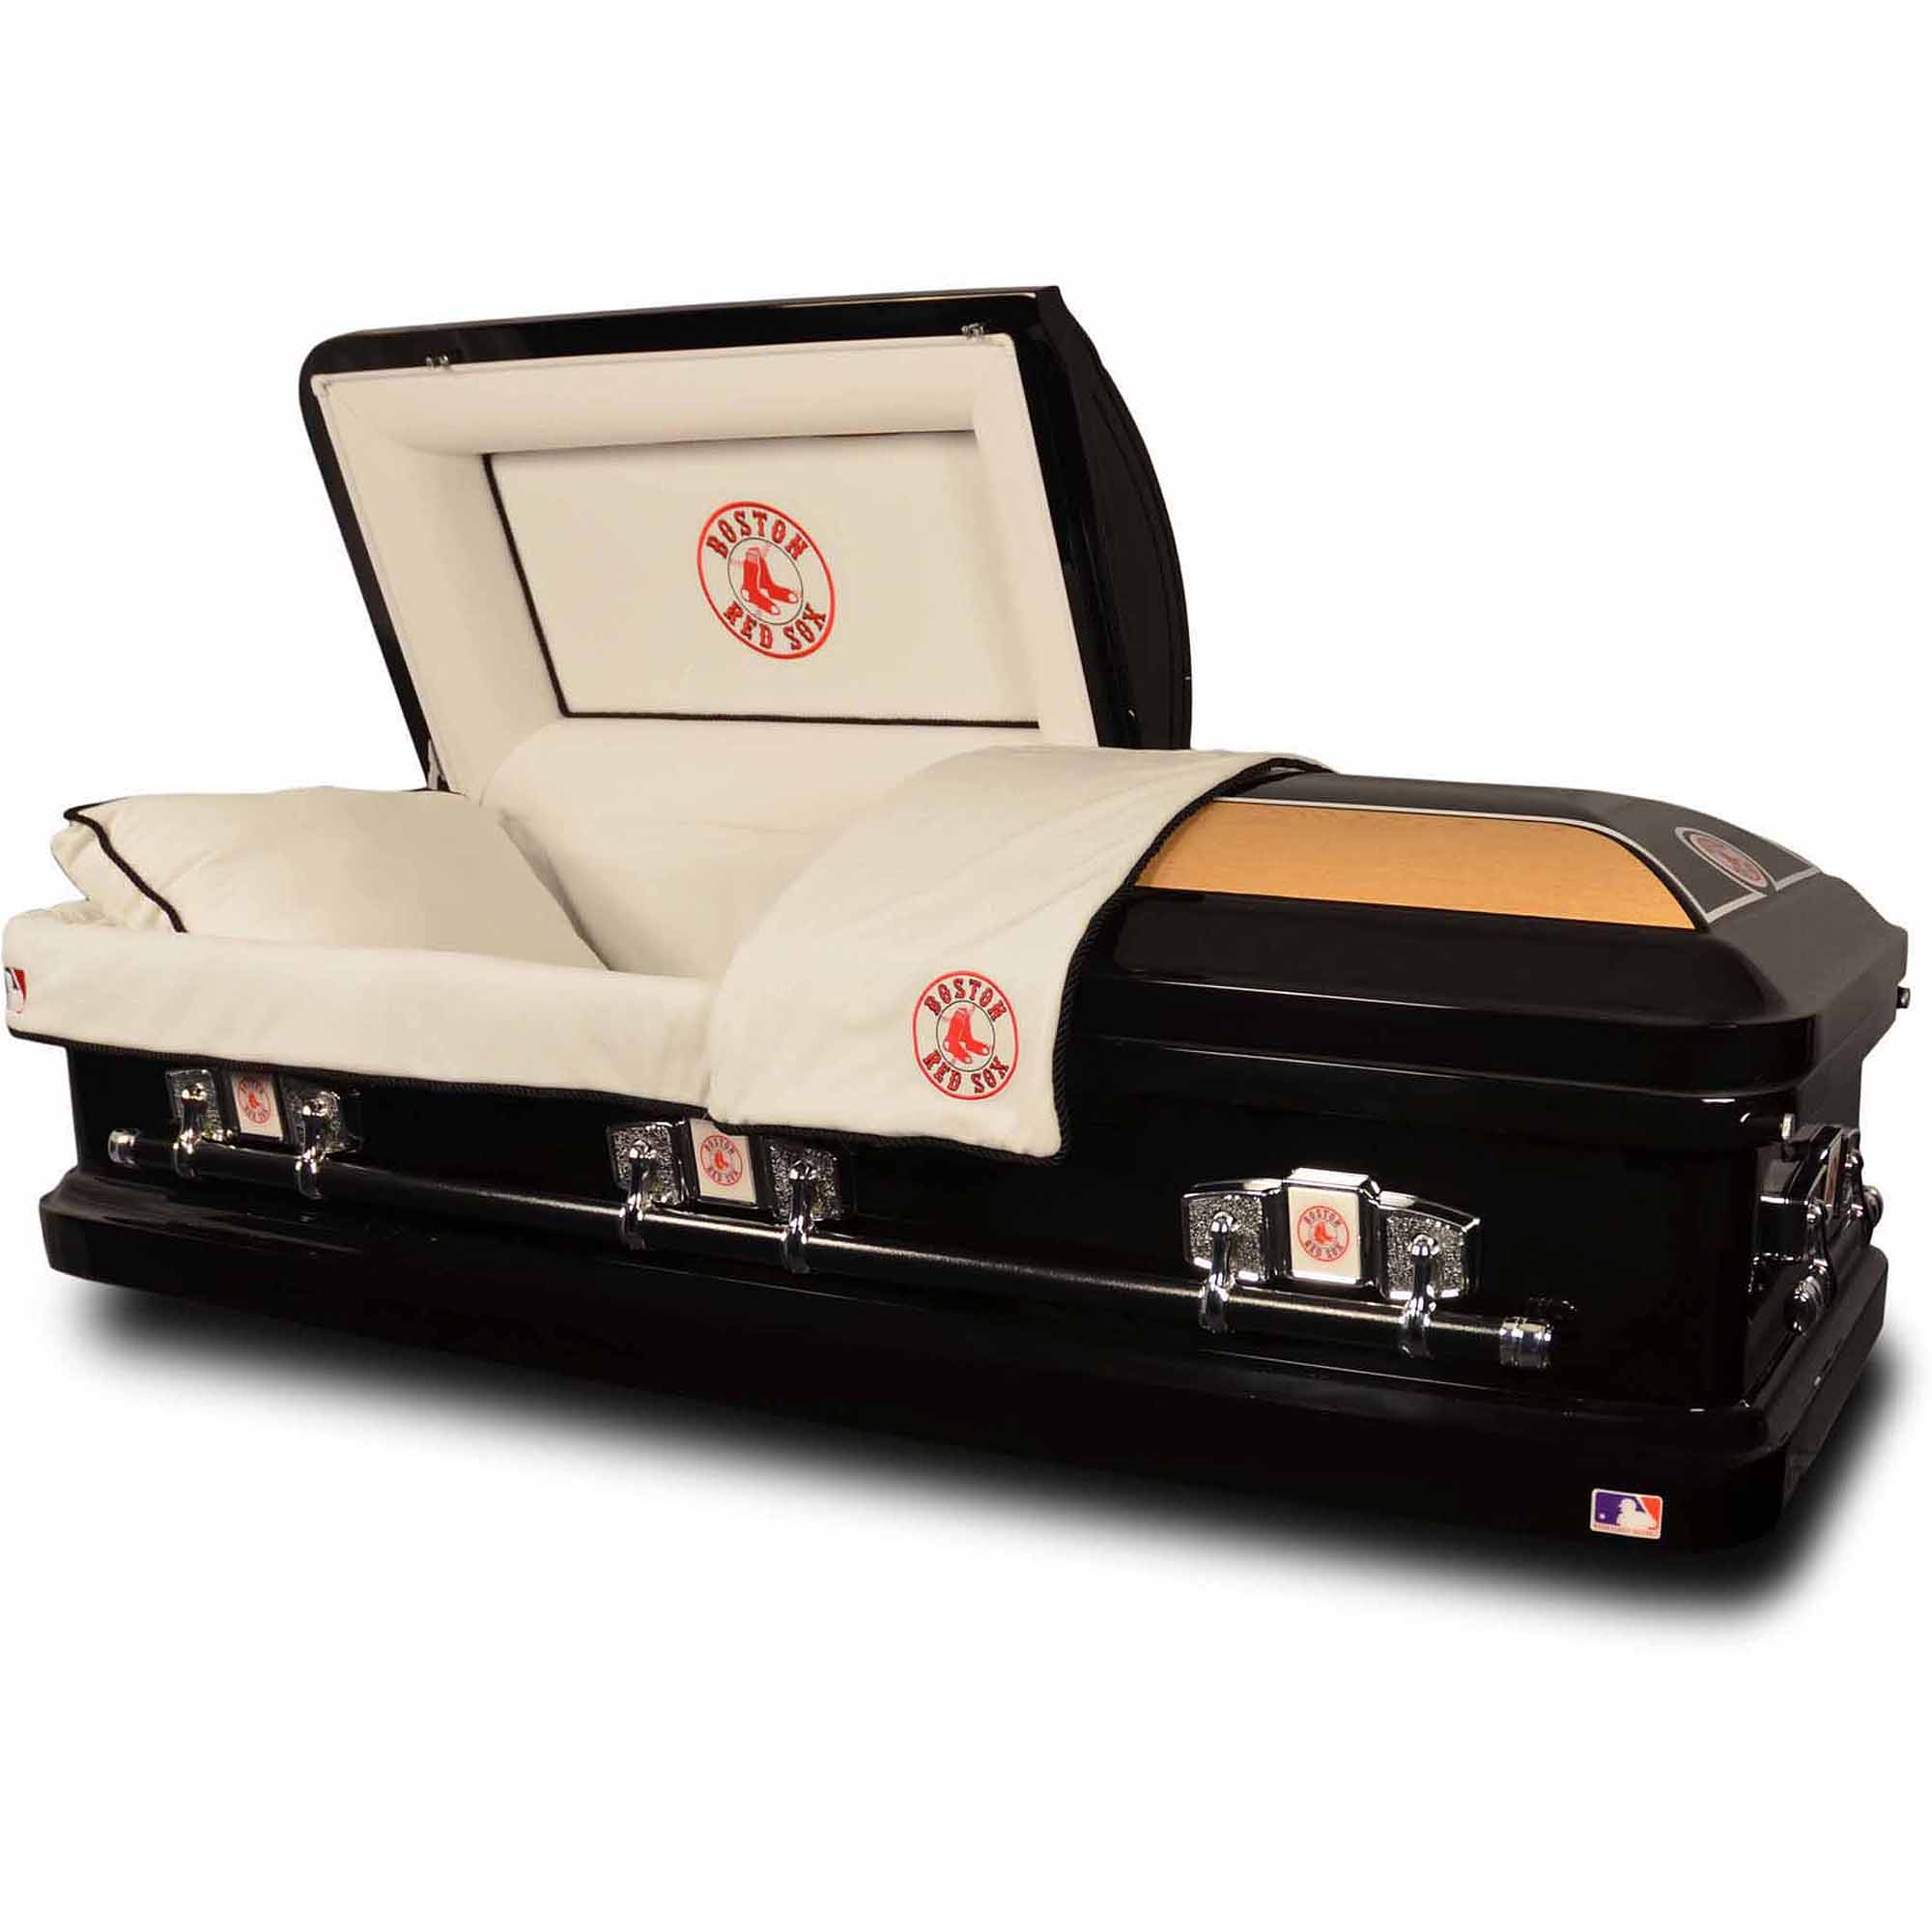 official major league baseball casket, boston red sox - walmart